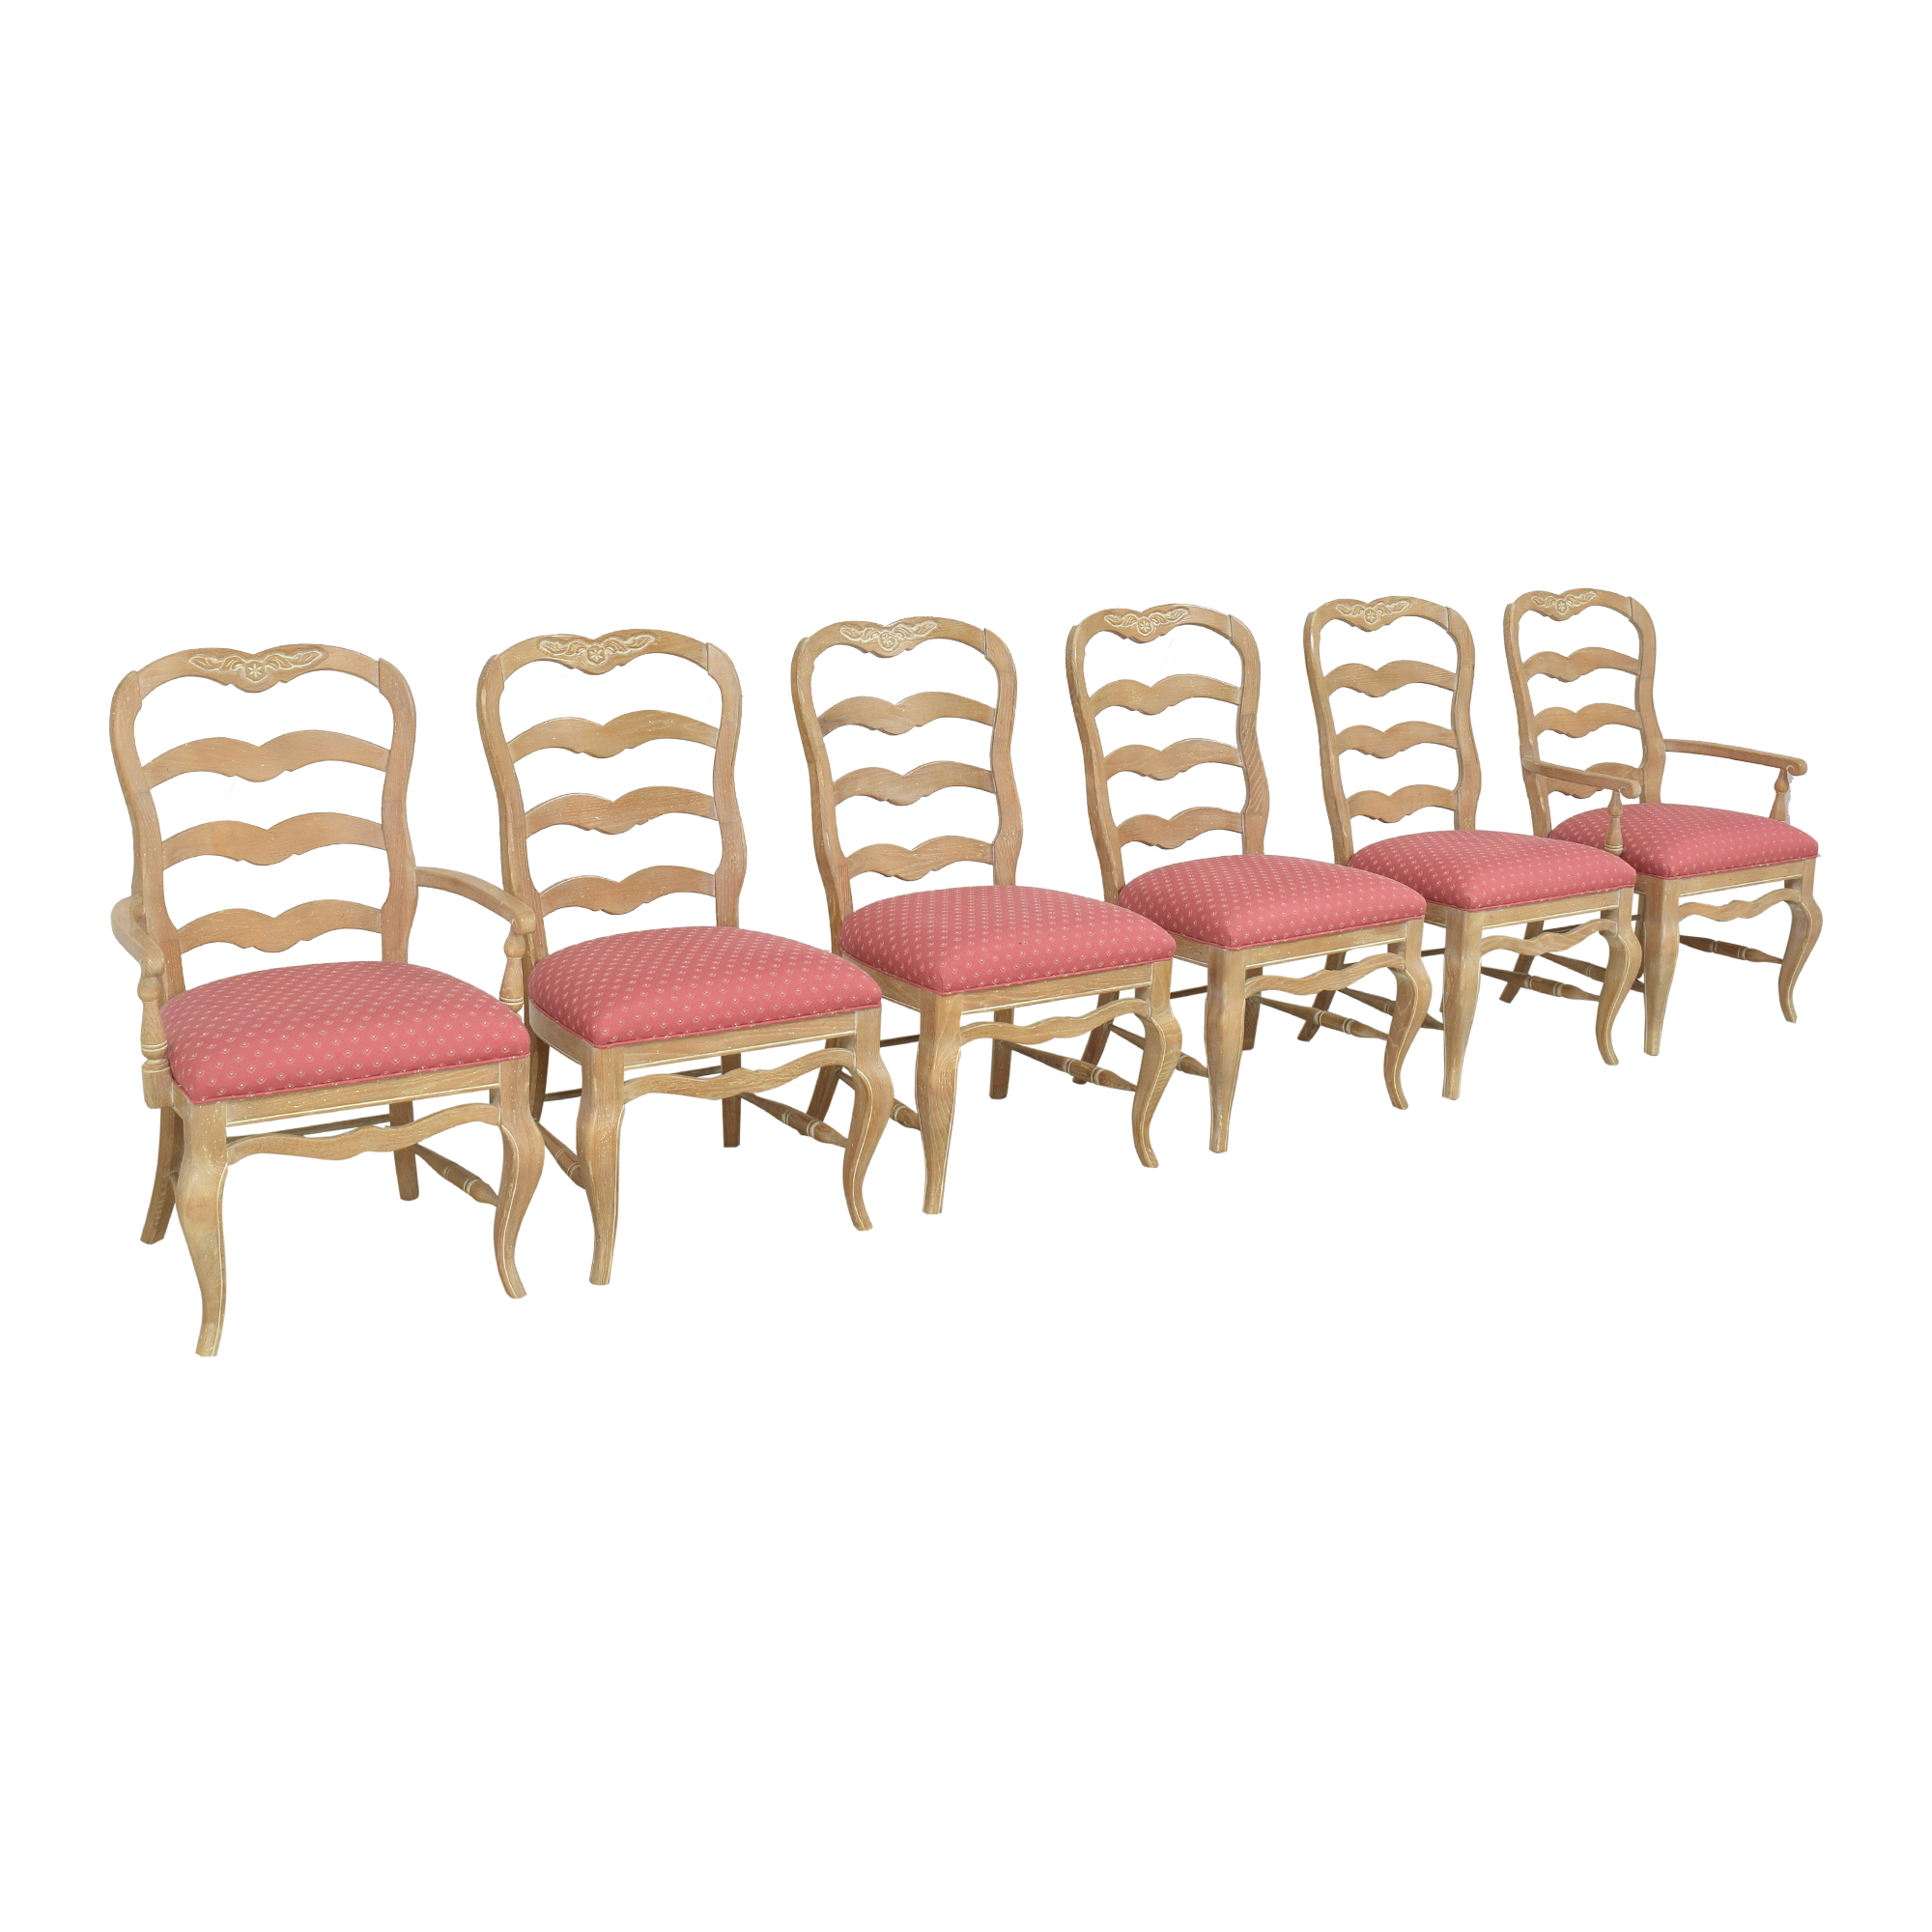 shop Pennsylvania House Country French Ladder Back Dining Chairs Pennsylvania House Chairs